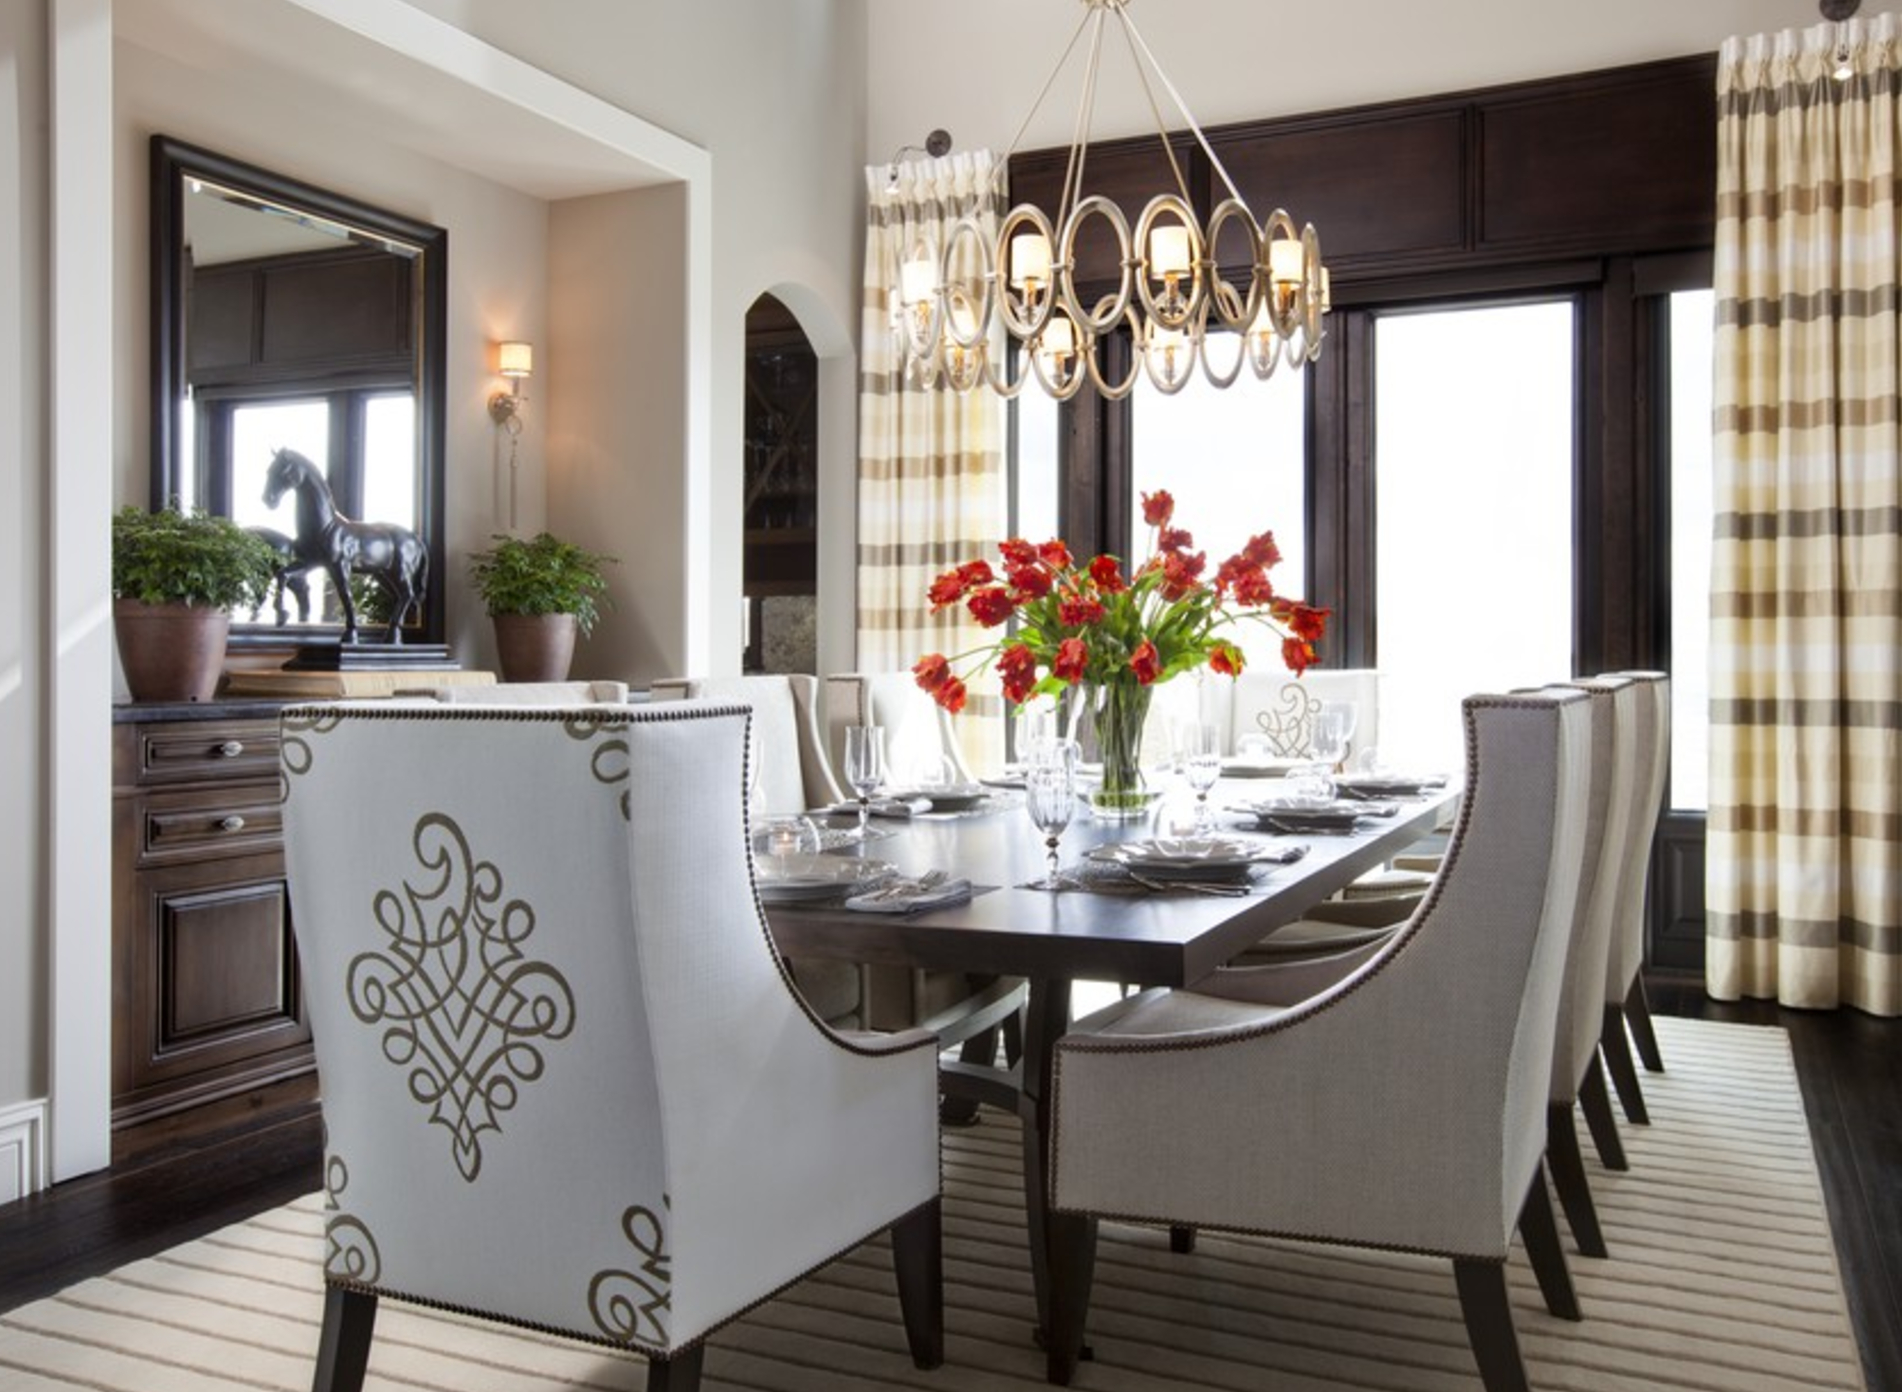 Favorite Dining Table Buying Guide: How To Find The Perfect Dining Throughout Transitional 4 Seating Square Casual Dining Tables (View 6 of 25)